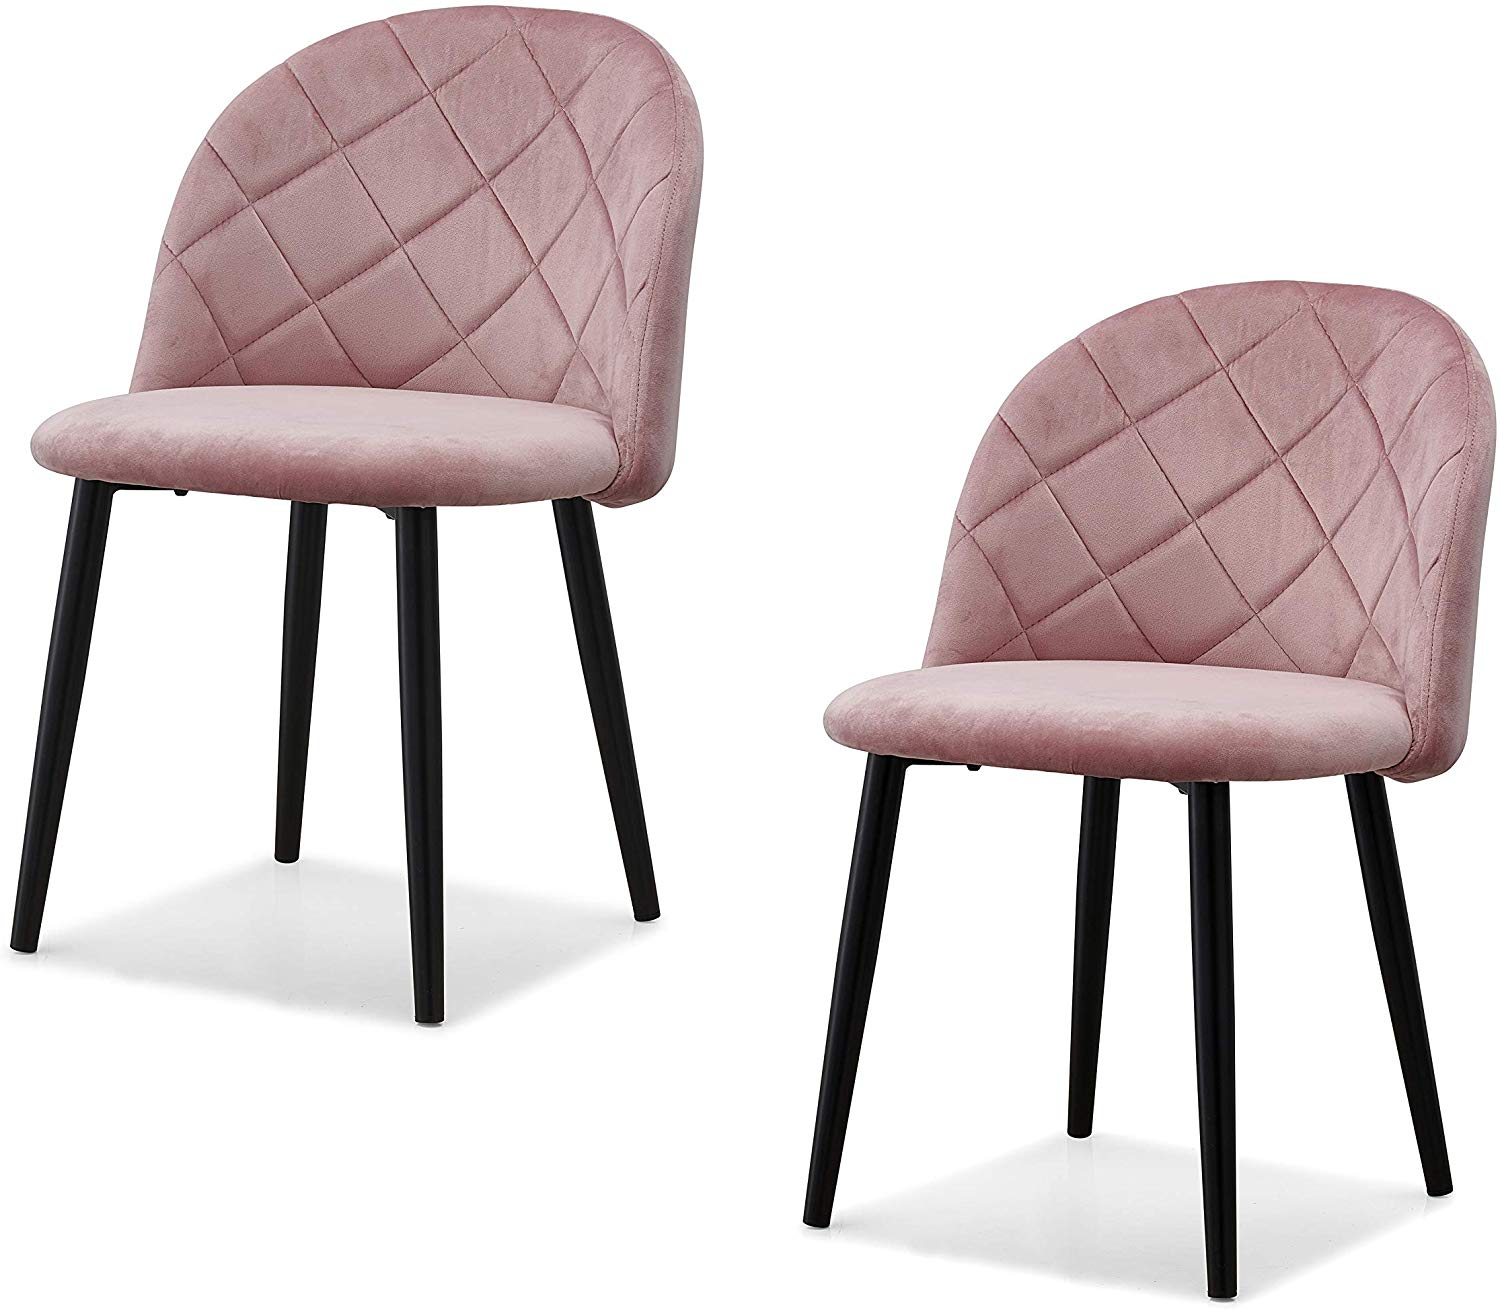 Set of 2 Edmonton Velvet Dining Chairs with Quilted Backrest in Pink 1